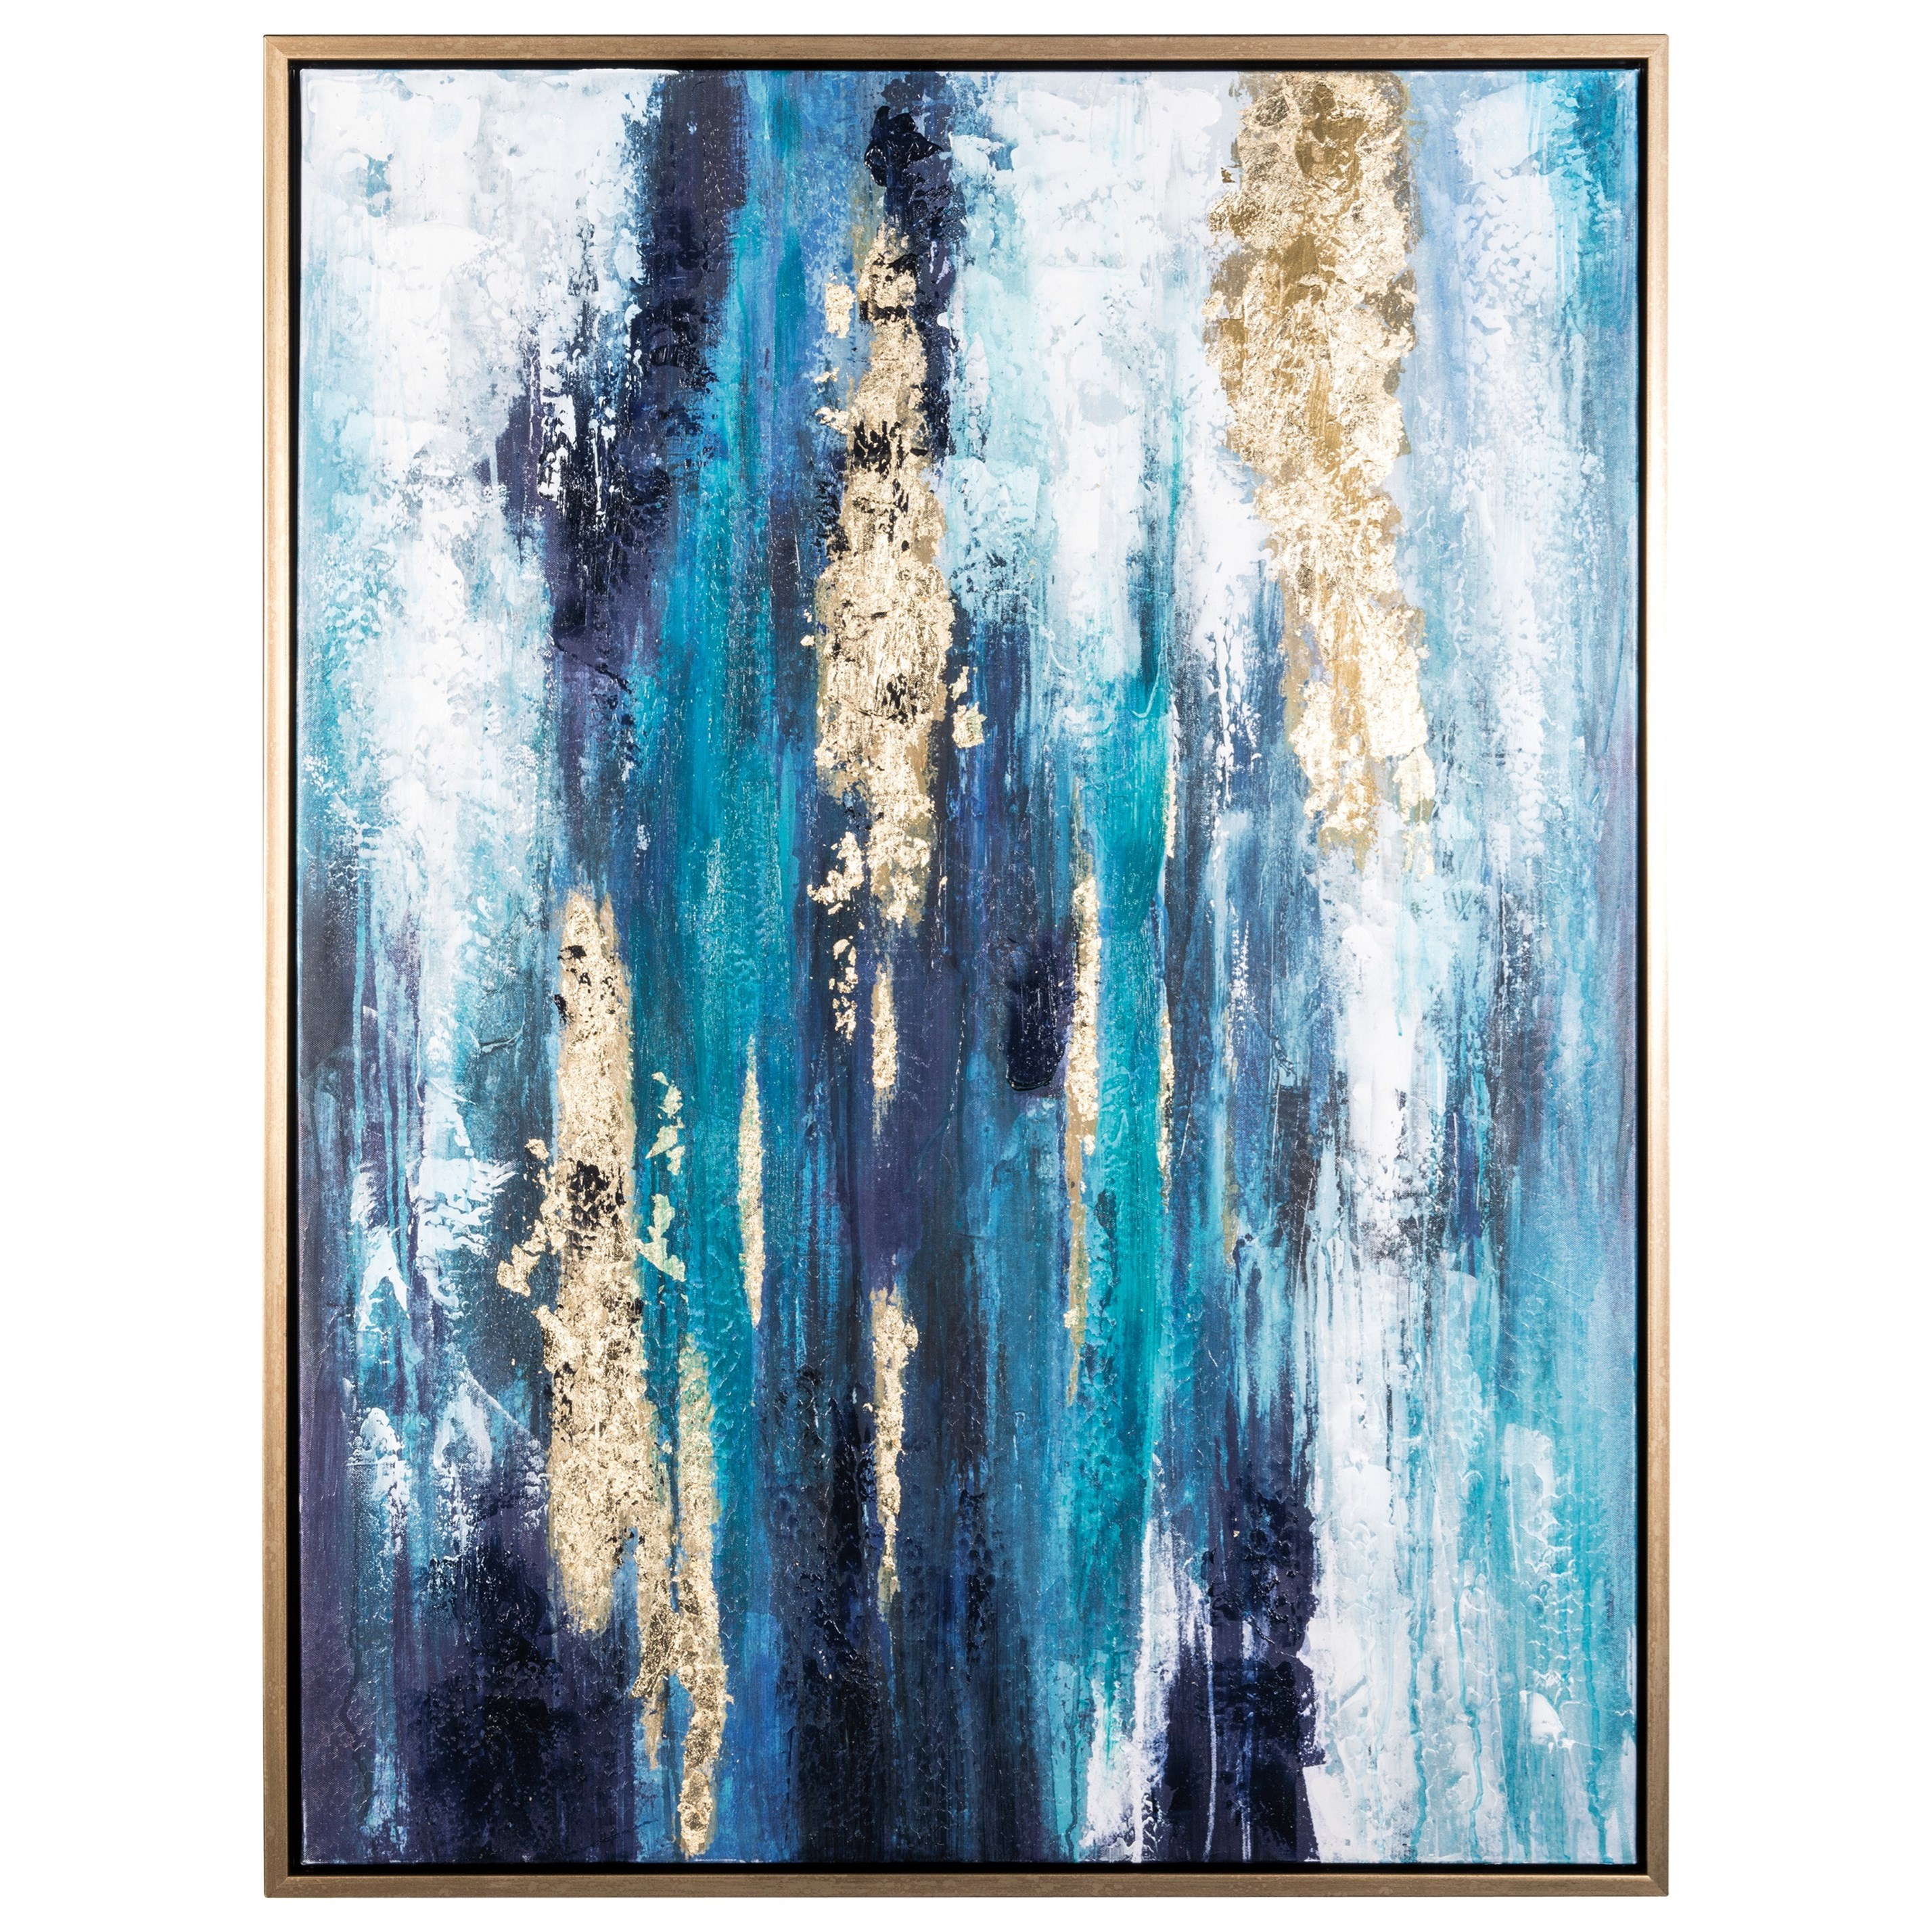 Signature Design by Ashley Wall Art Dinorah Teal Blue Wall Art - Item Number: A8000218